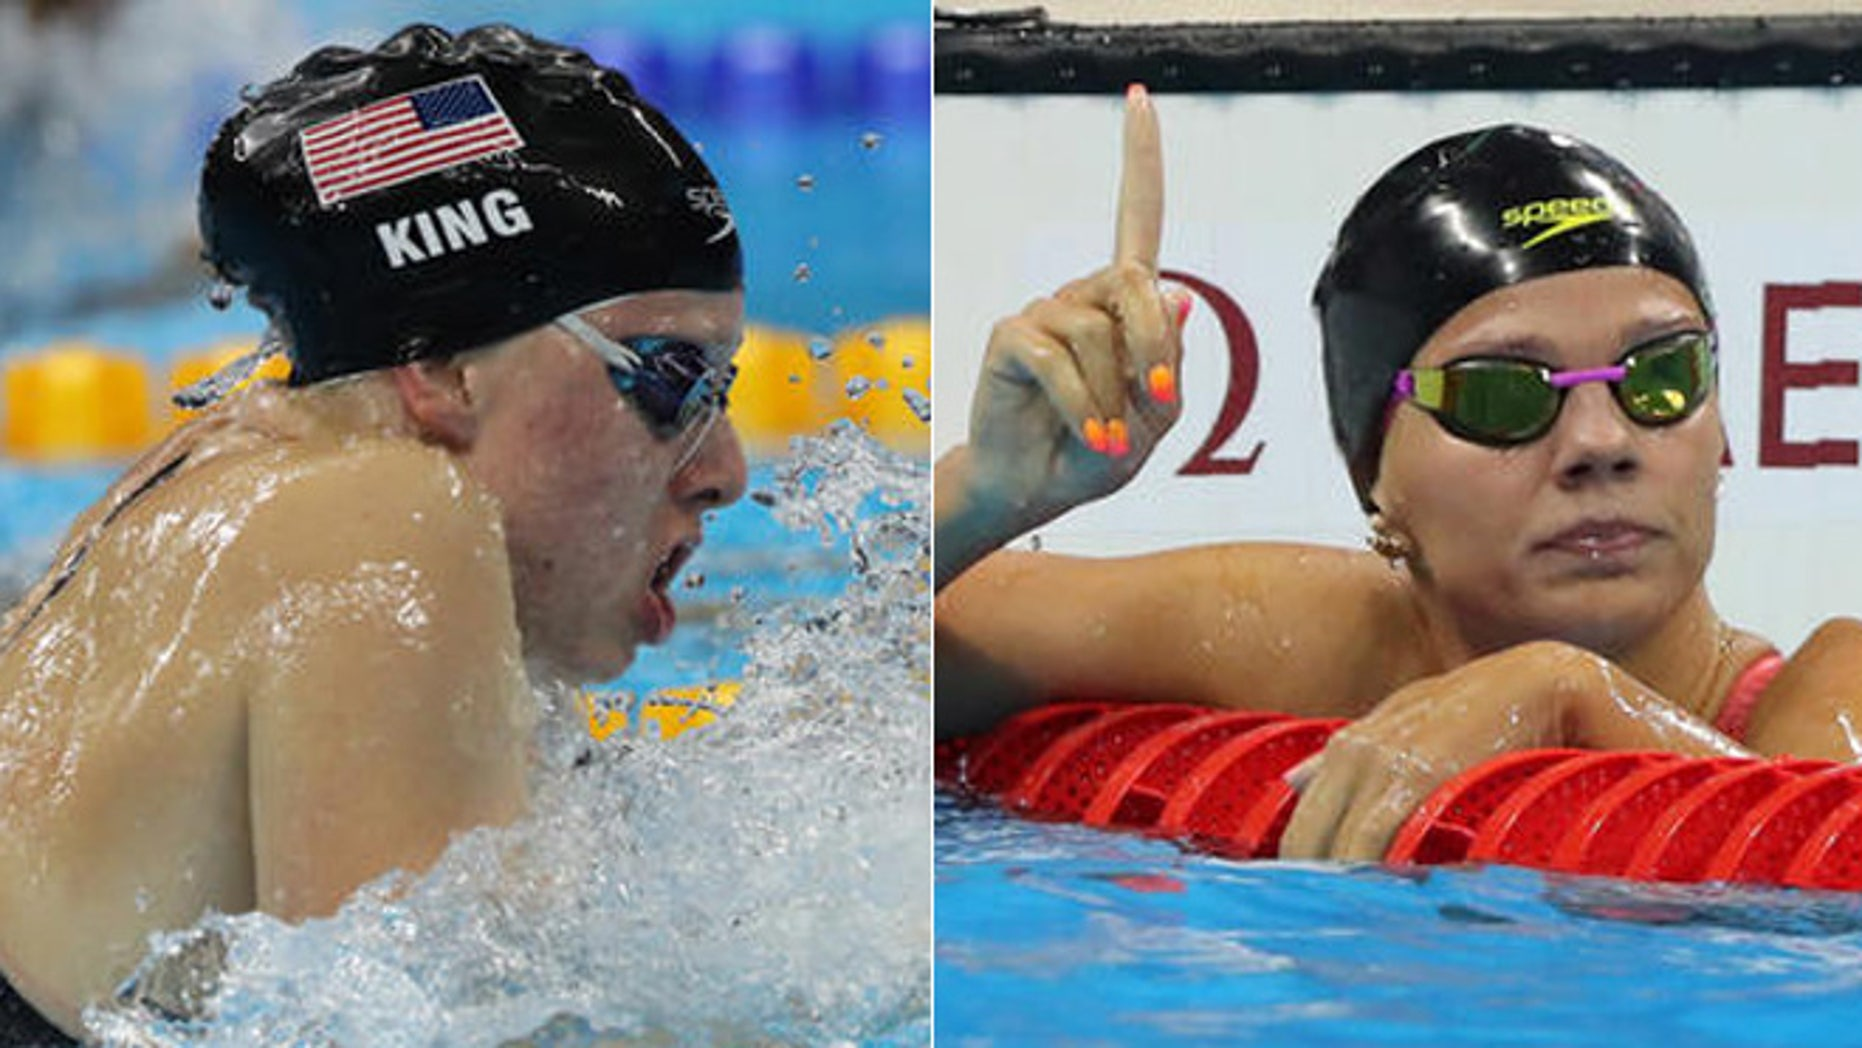 United States' Lilly King (left) competes in a semifinal of the women's 100-meter breaststroke during 2016 Summer Olympics, Russia's Yulia Efimova (right) celebrates winning a semifinal of the women's 100-meter breaststroke.